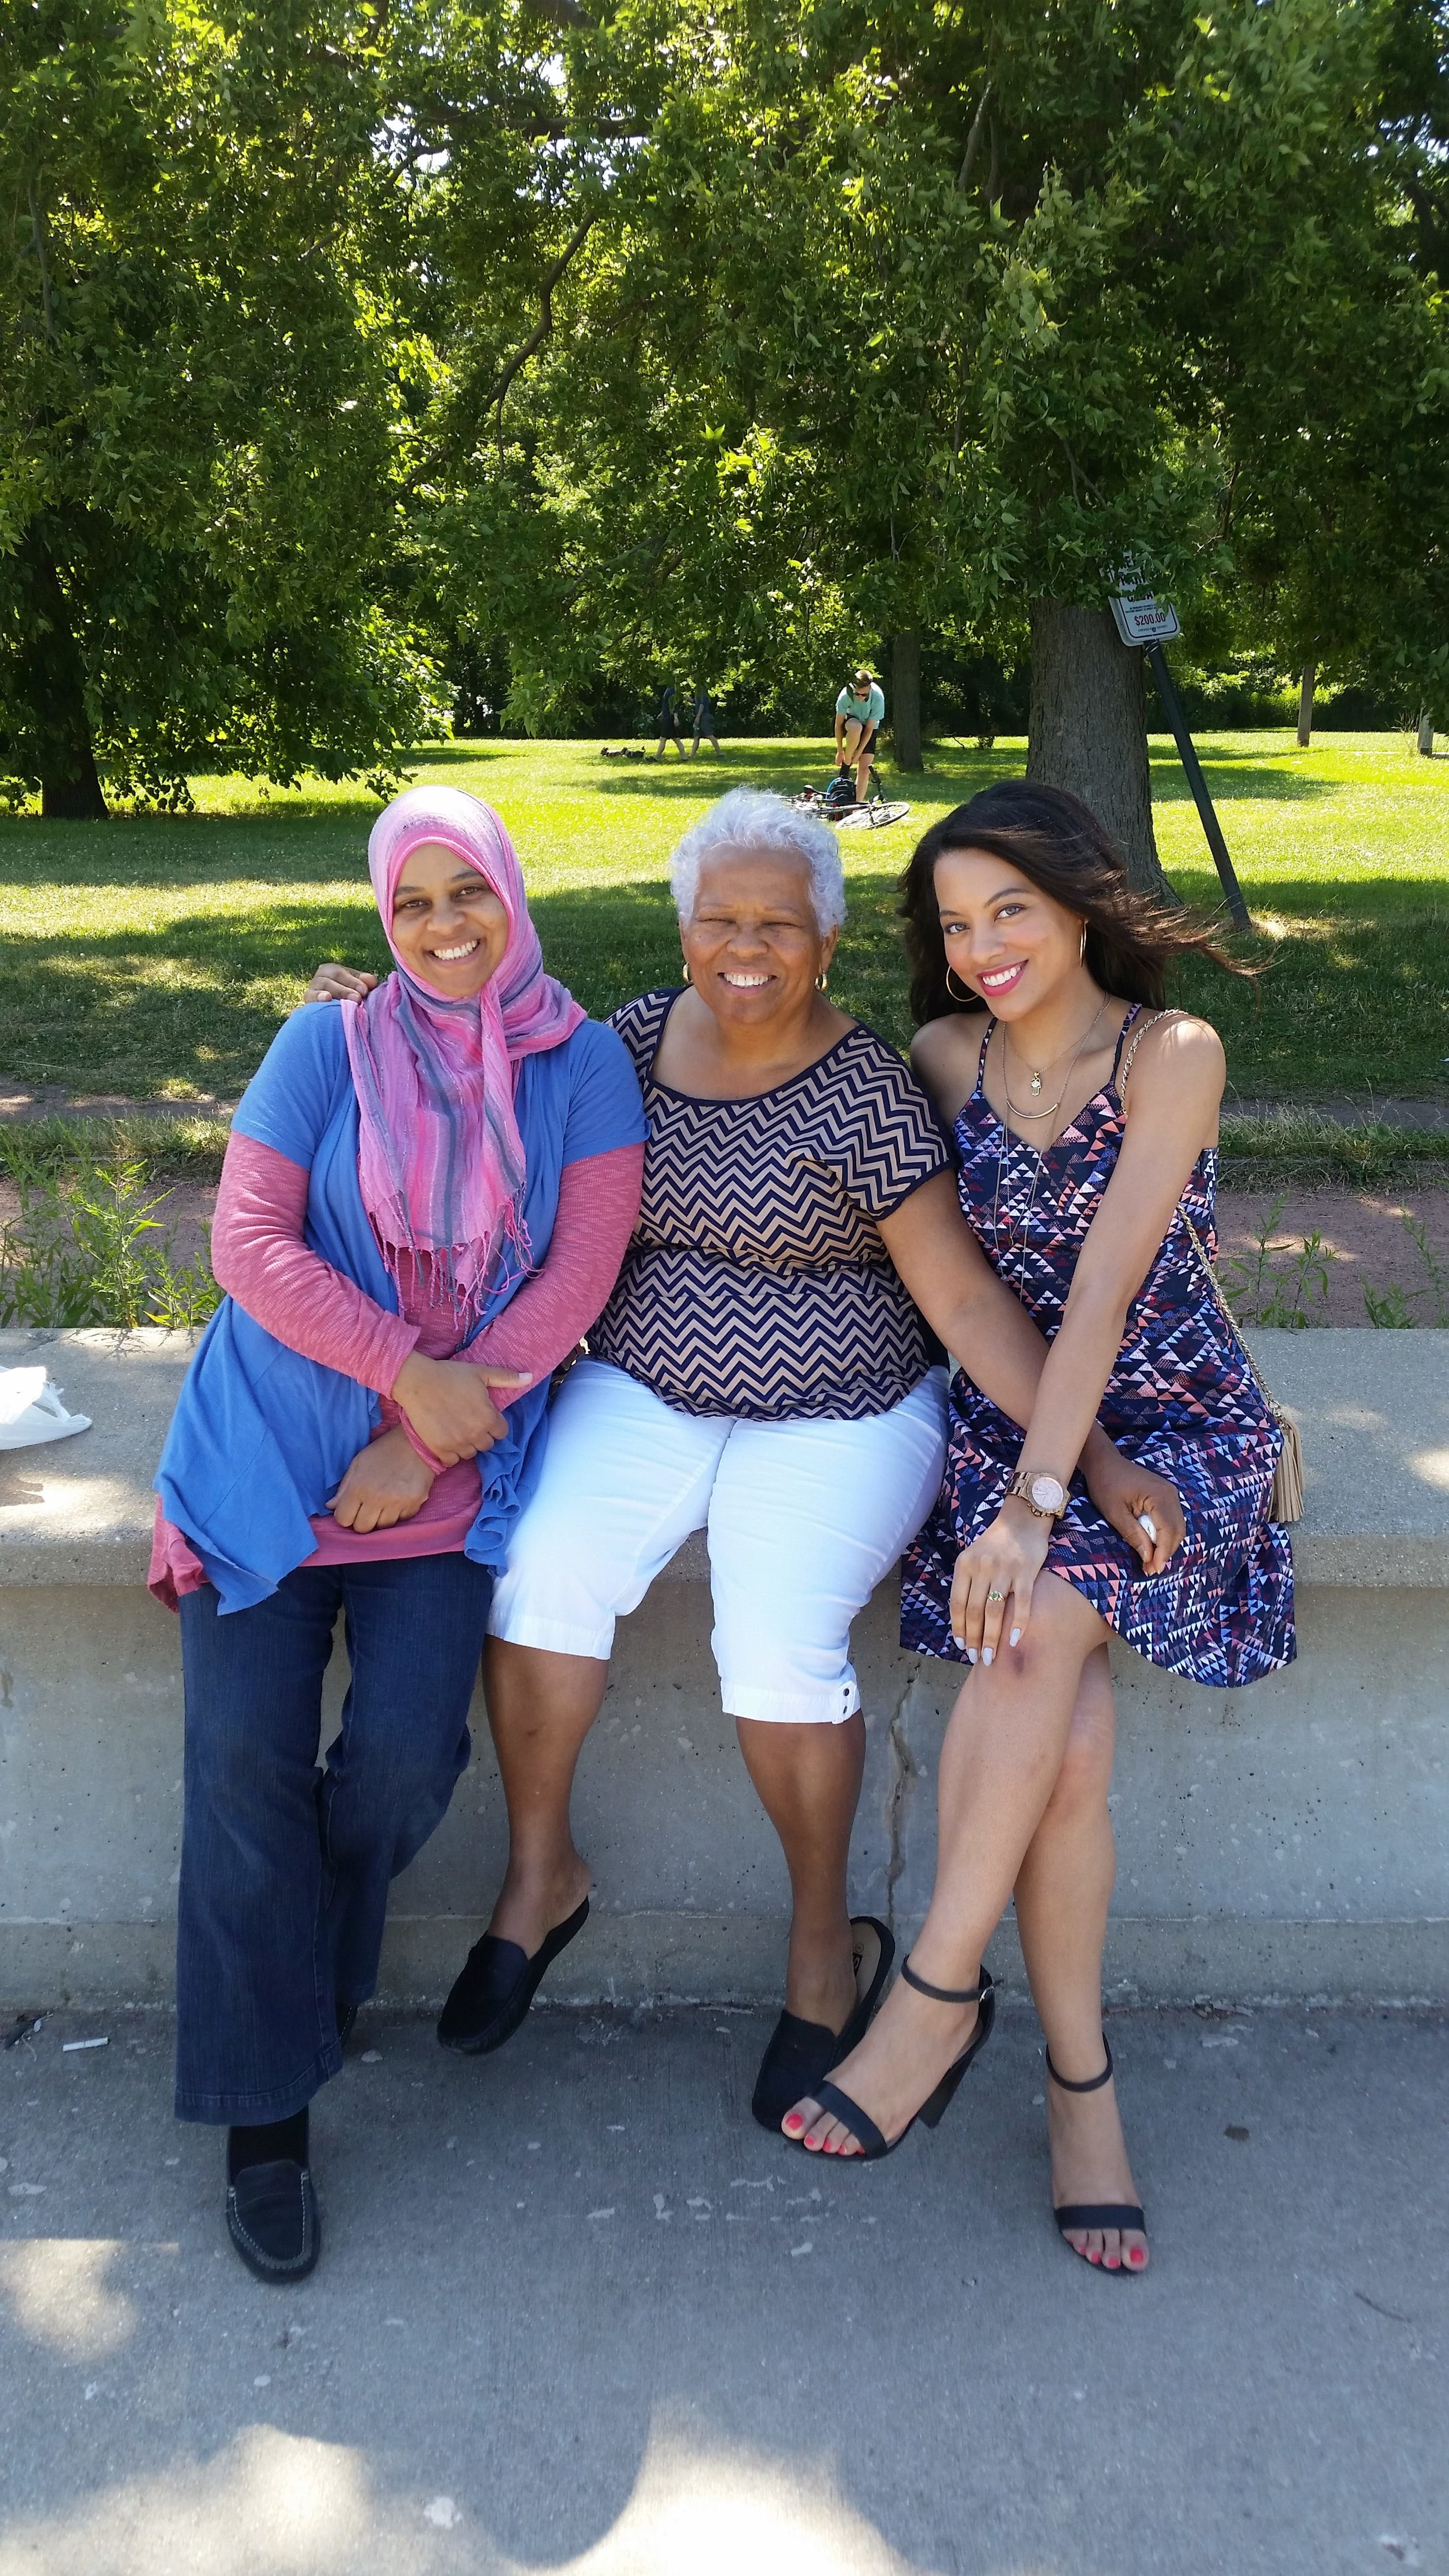 My aunt, grandmother and I